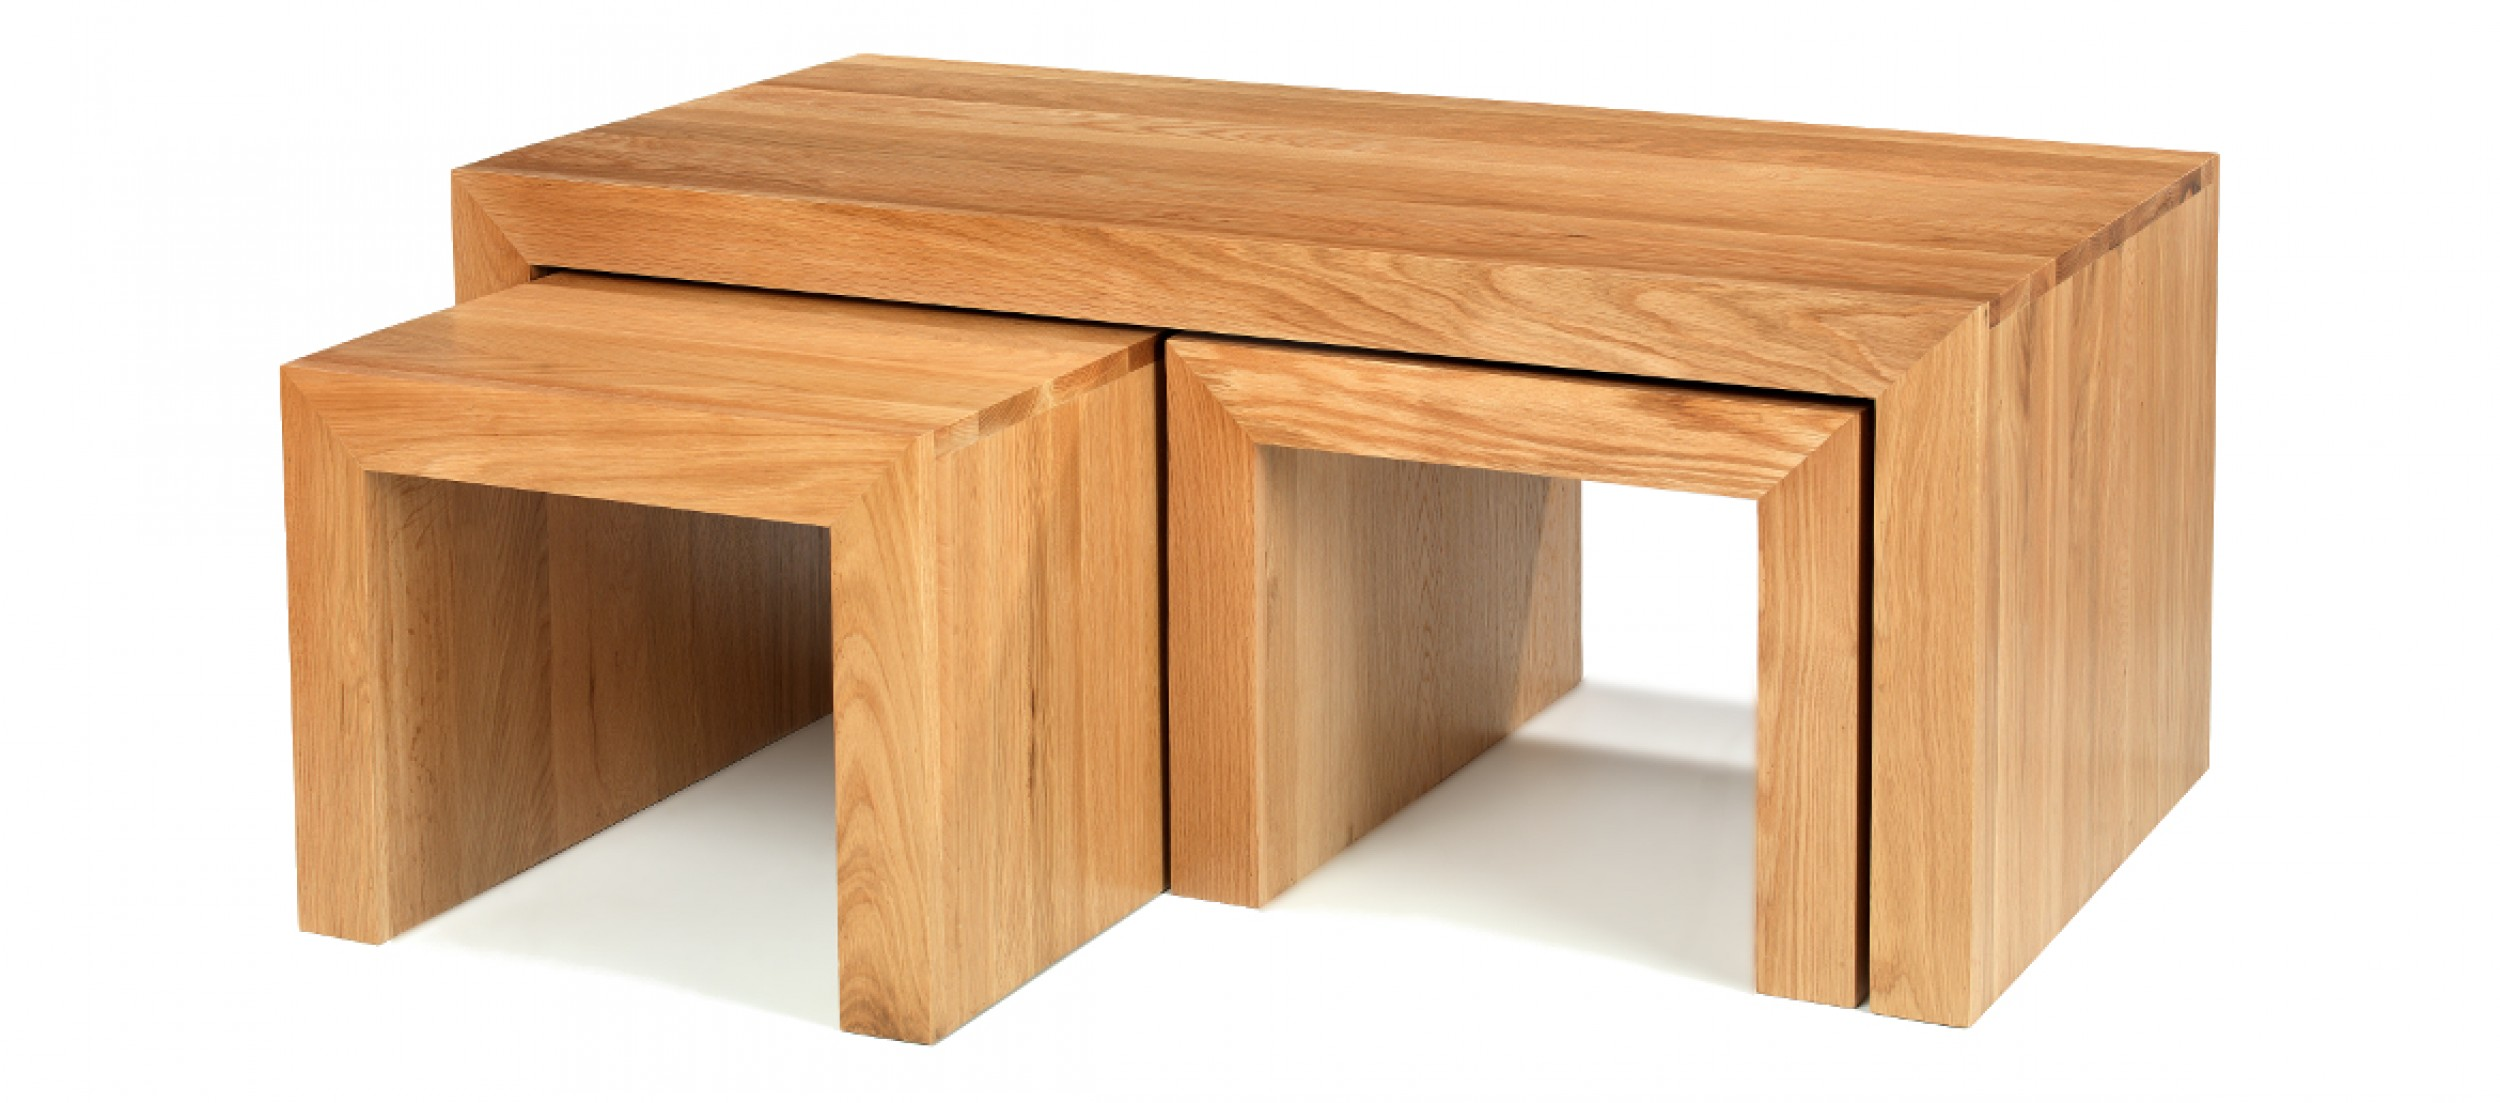 Cube Oak Long John Coffee Table